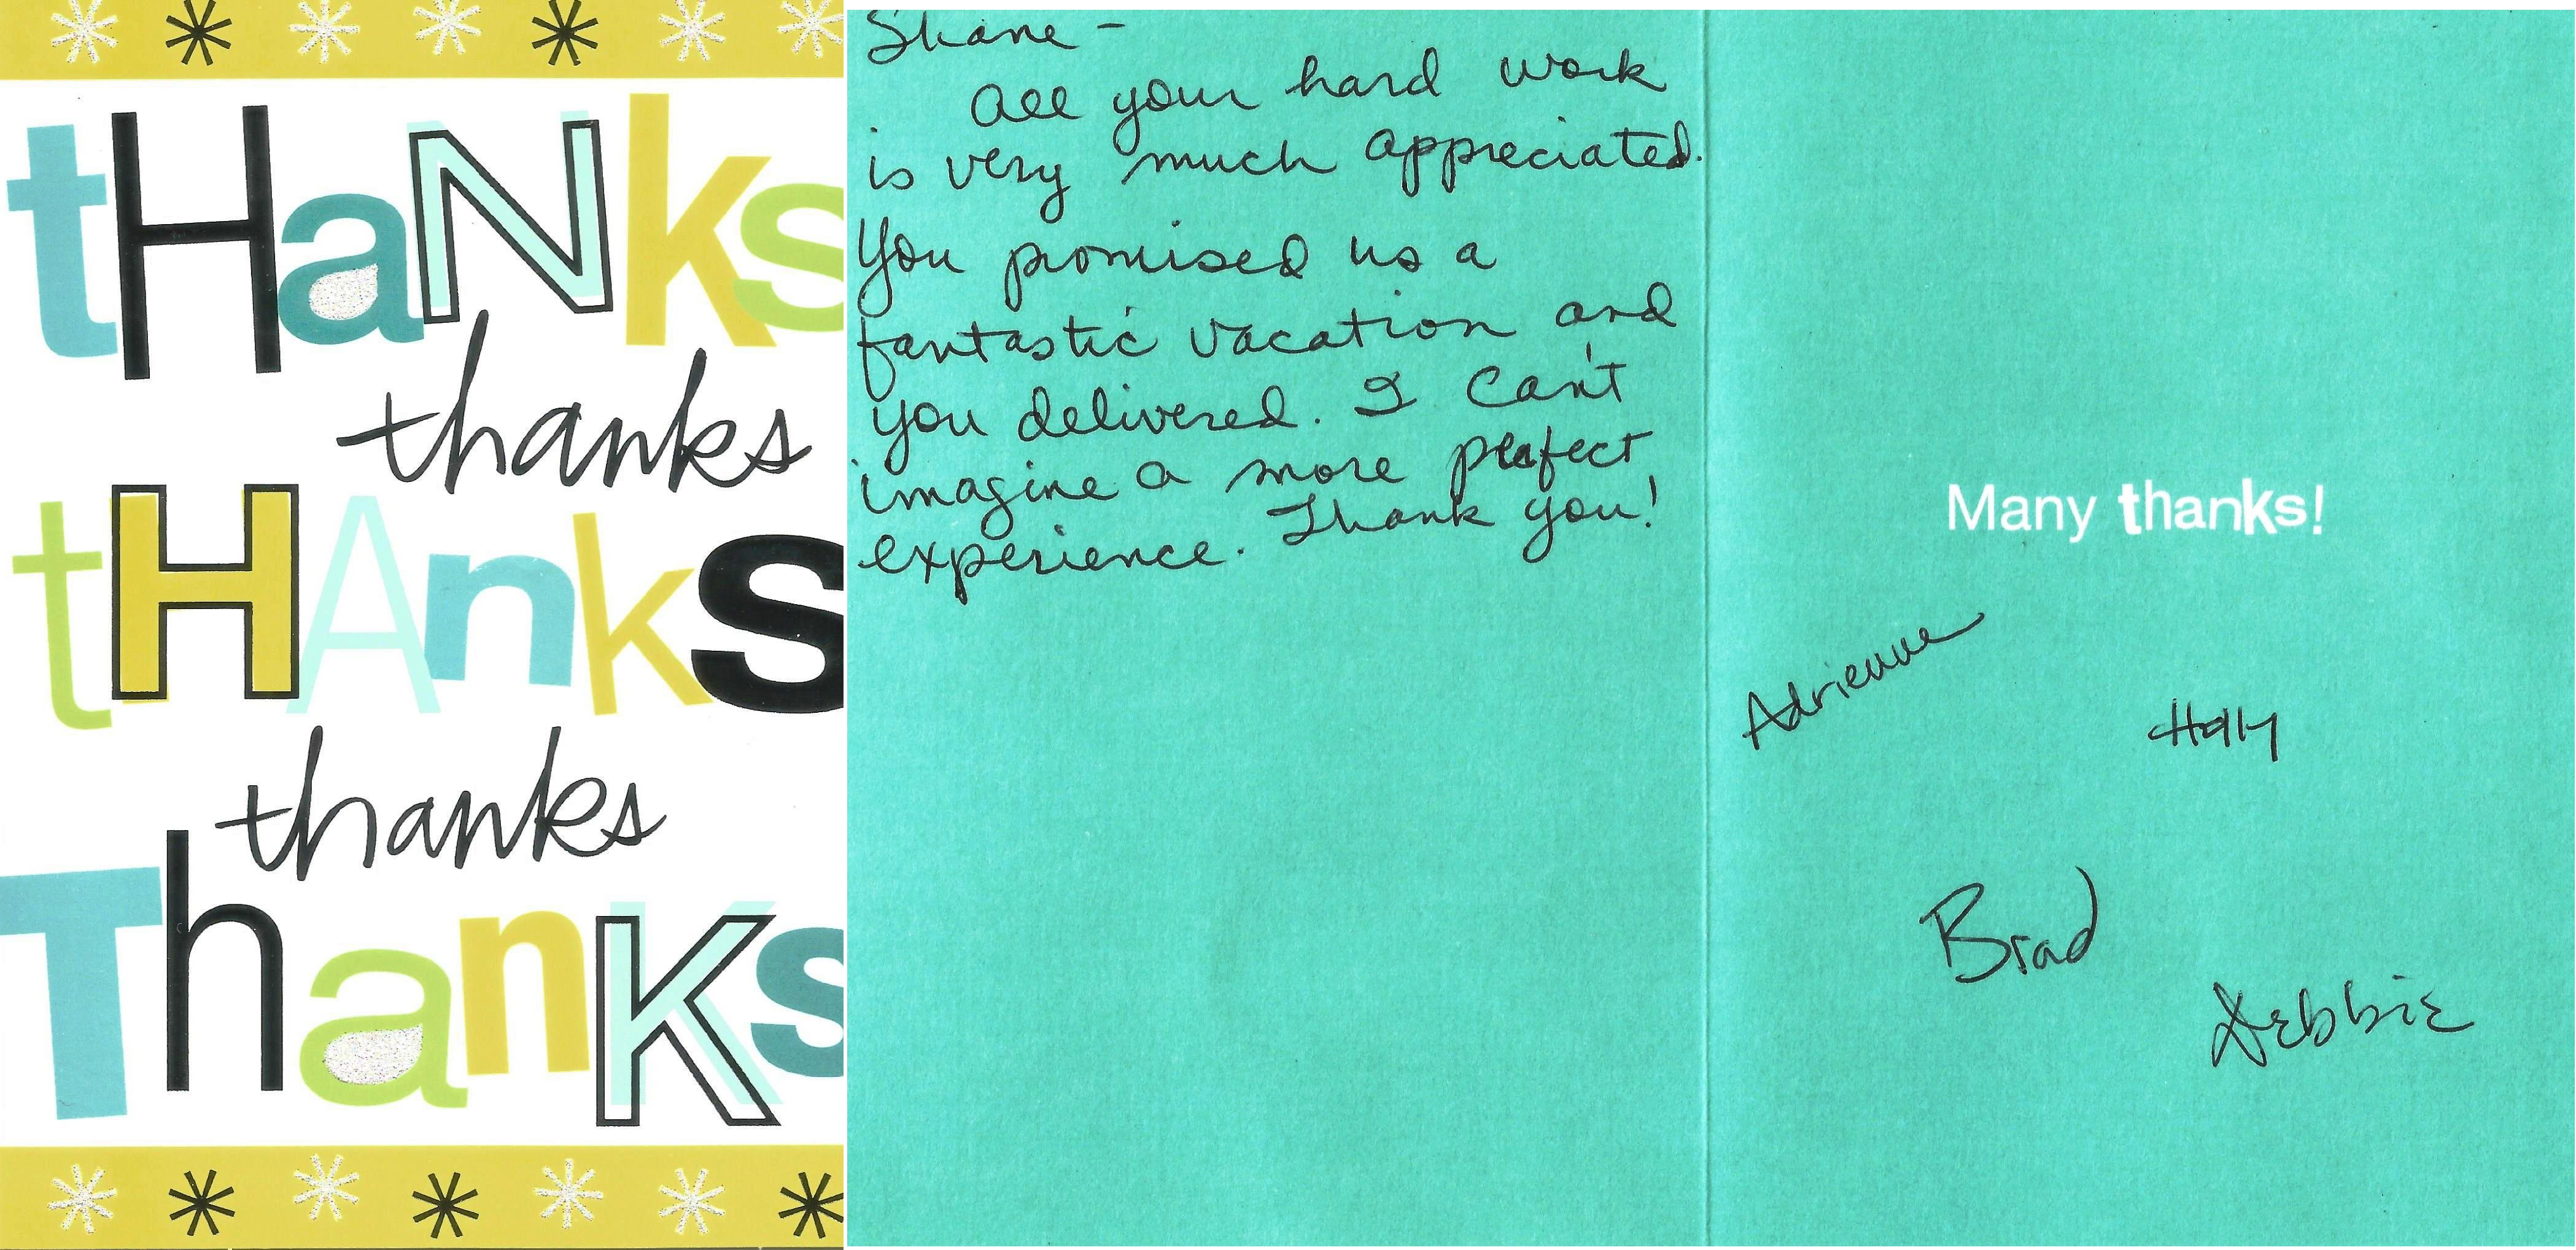 Card from a guest